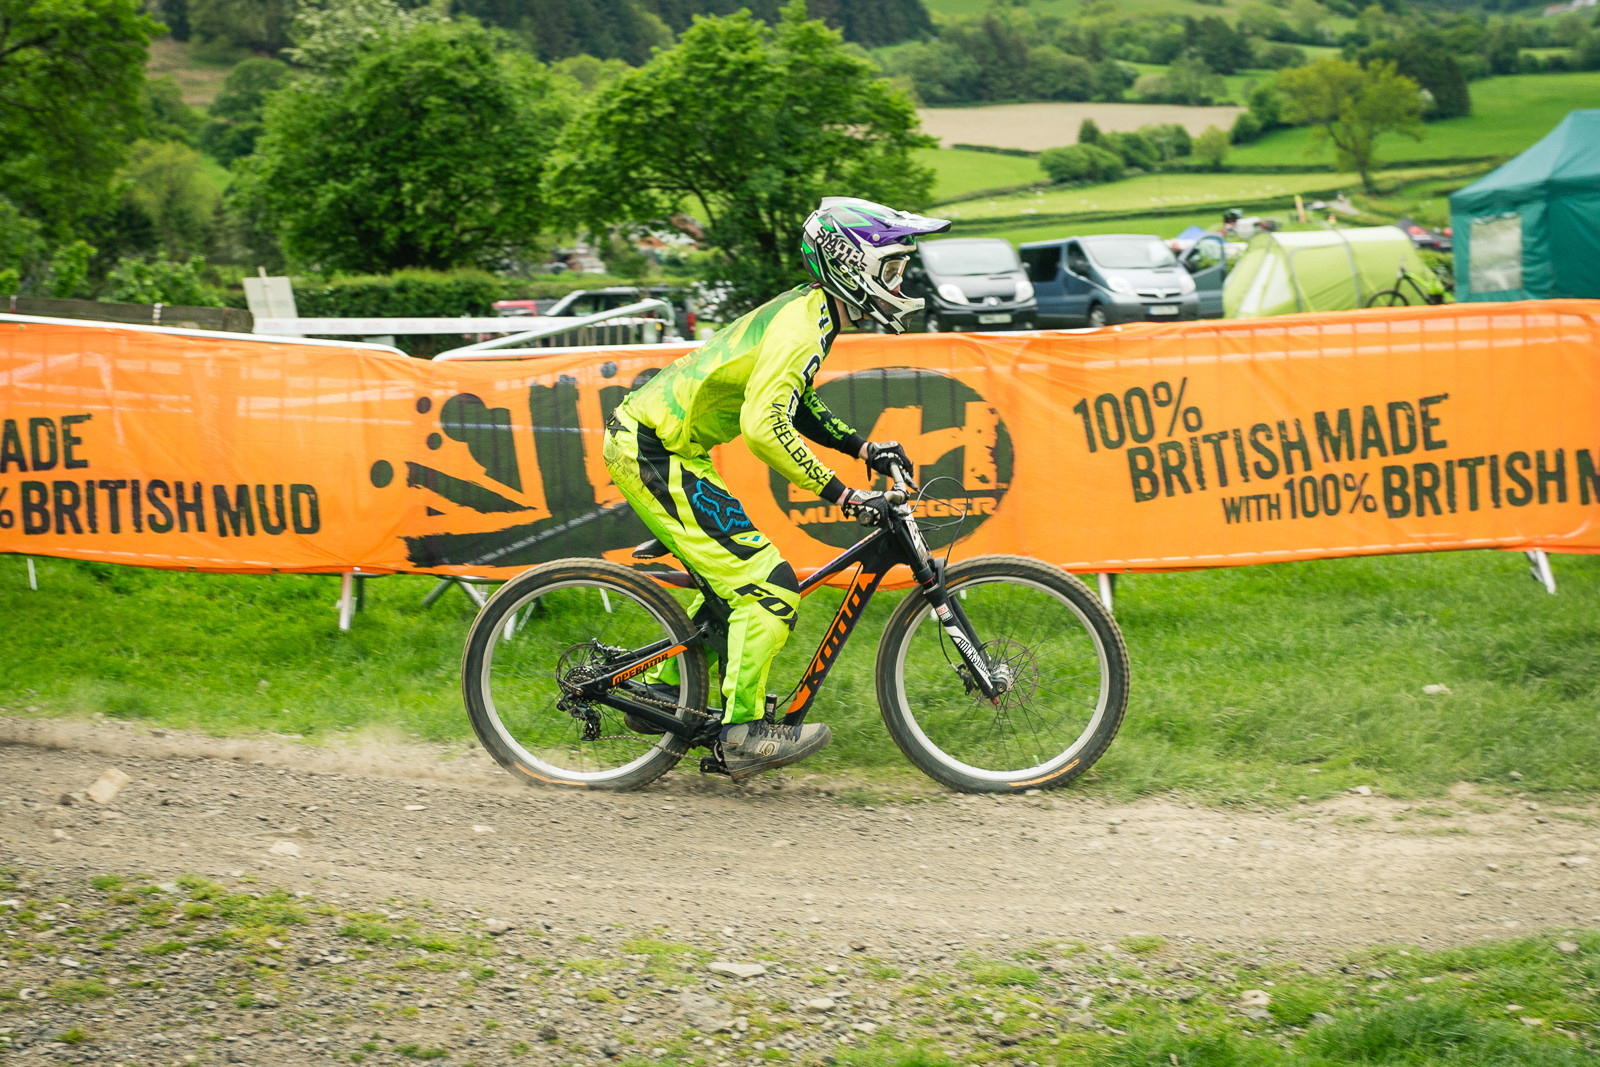 Kona Operator G-ed Out at Llangollen - G-Out Project - Llangollen BDS 2015 - Mountain Biking Pictures - Vital MTB